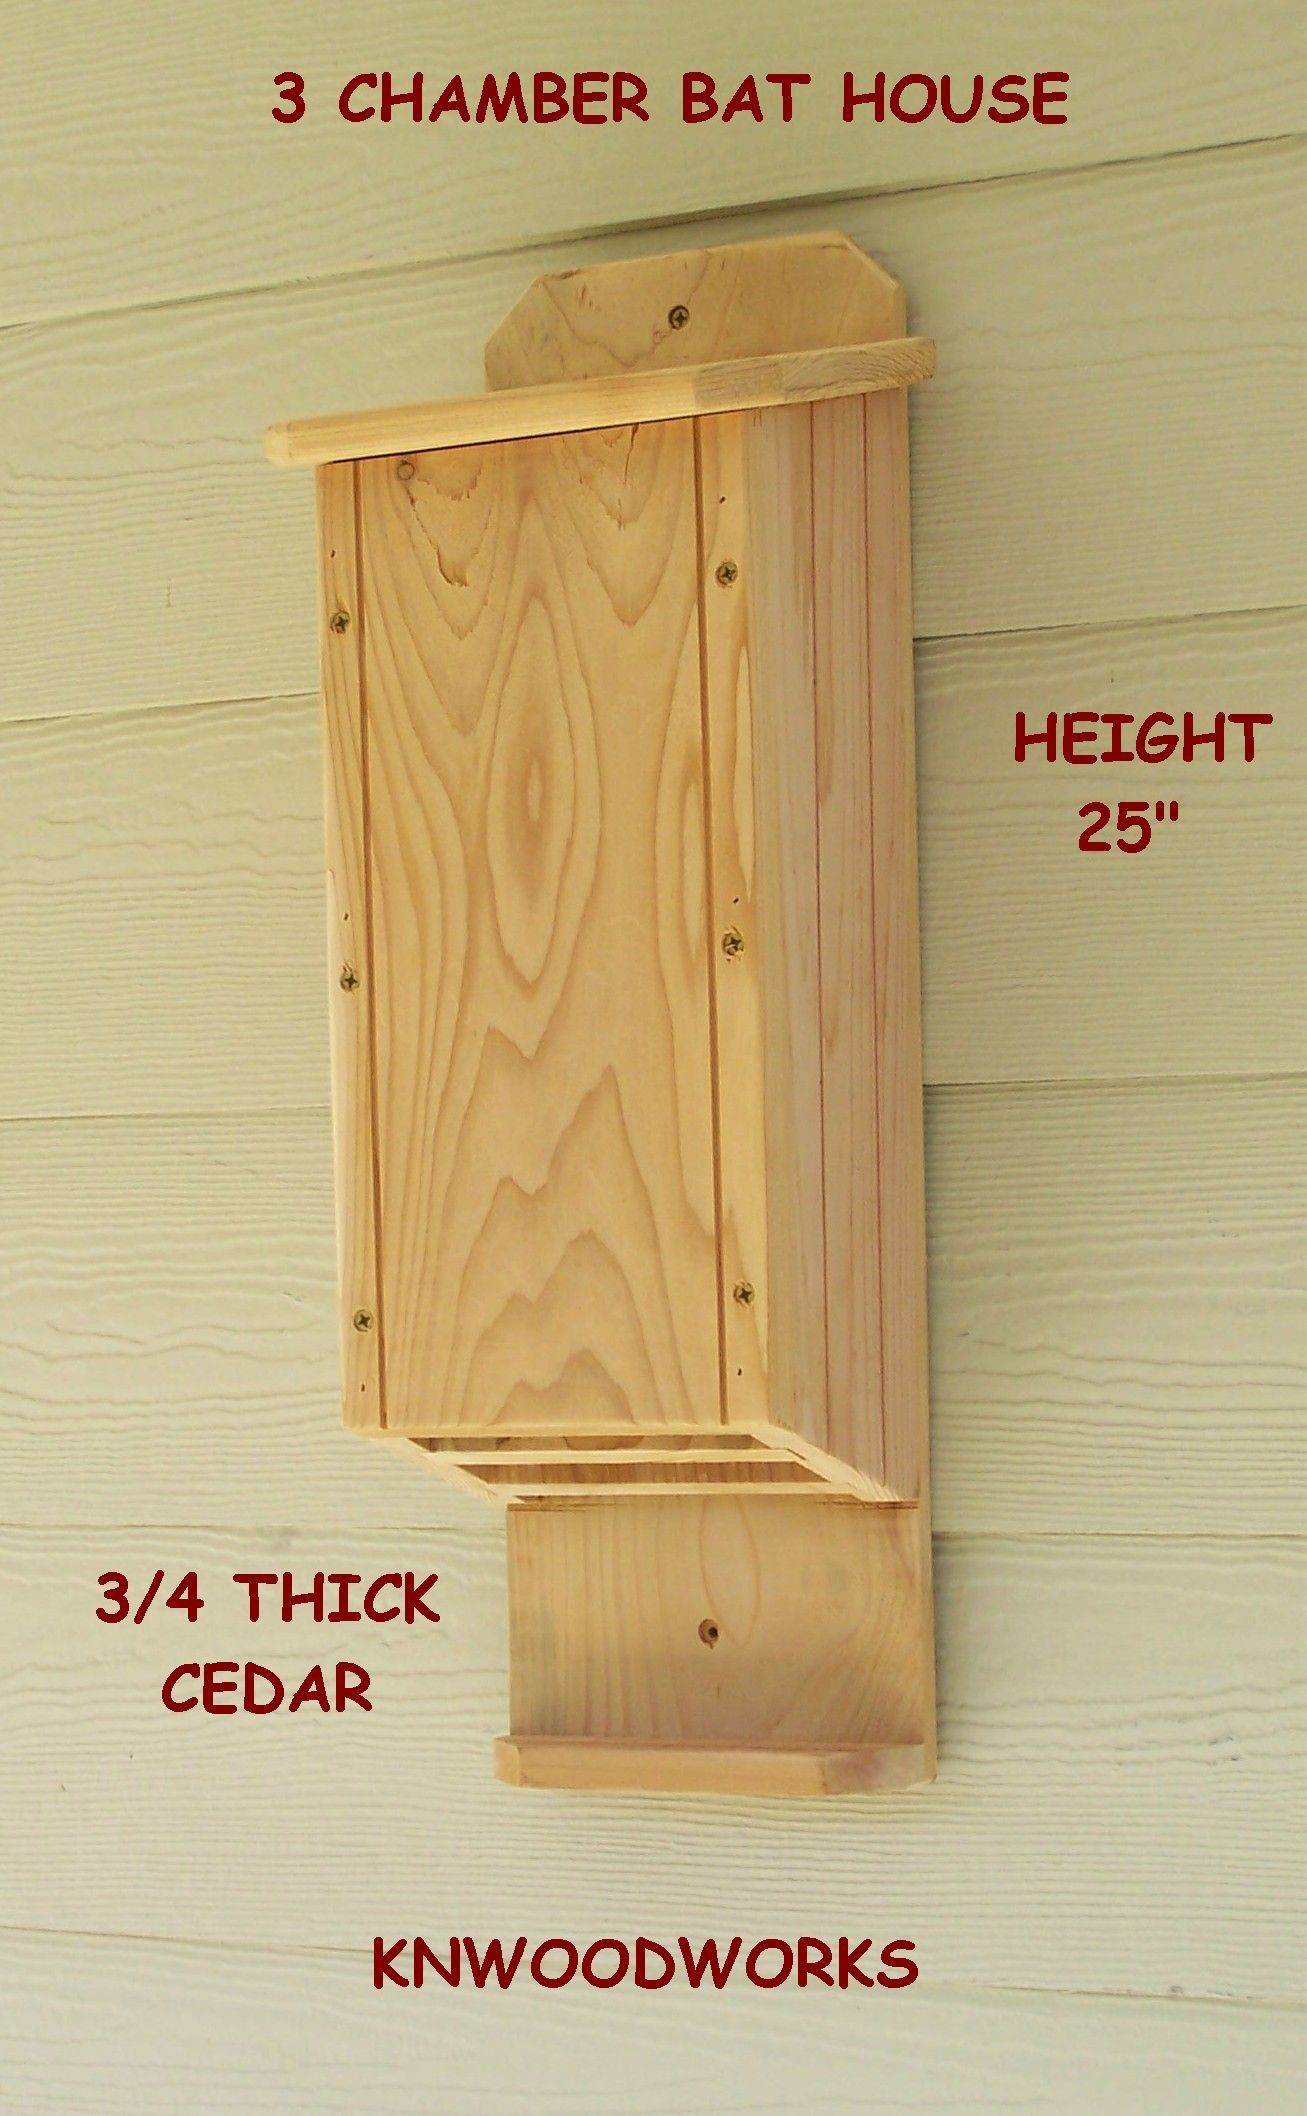 Make Your Own Bat House